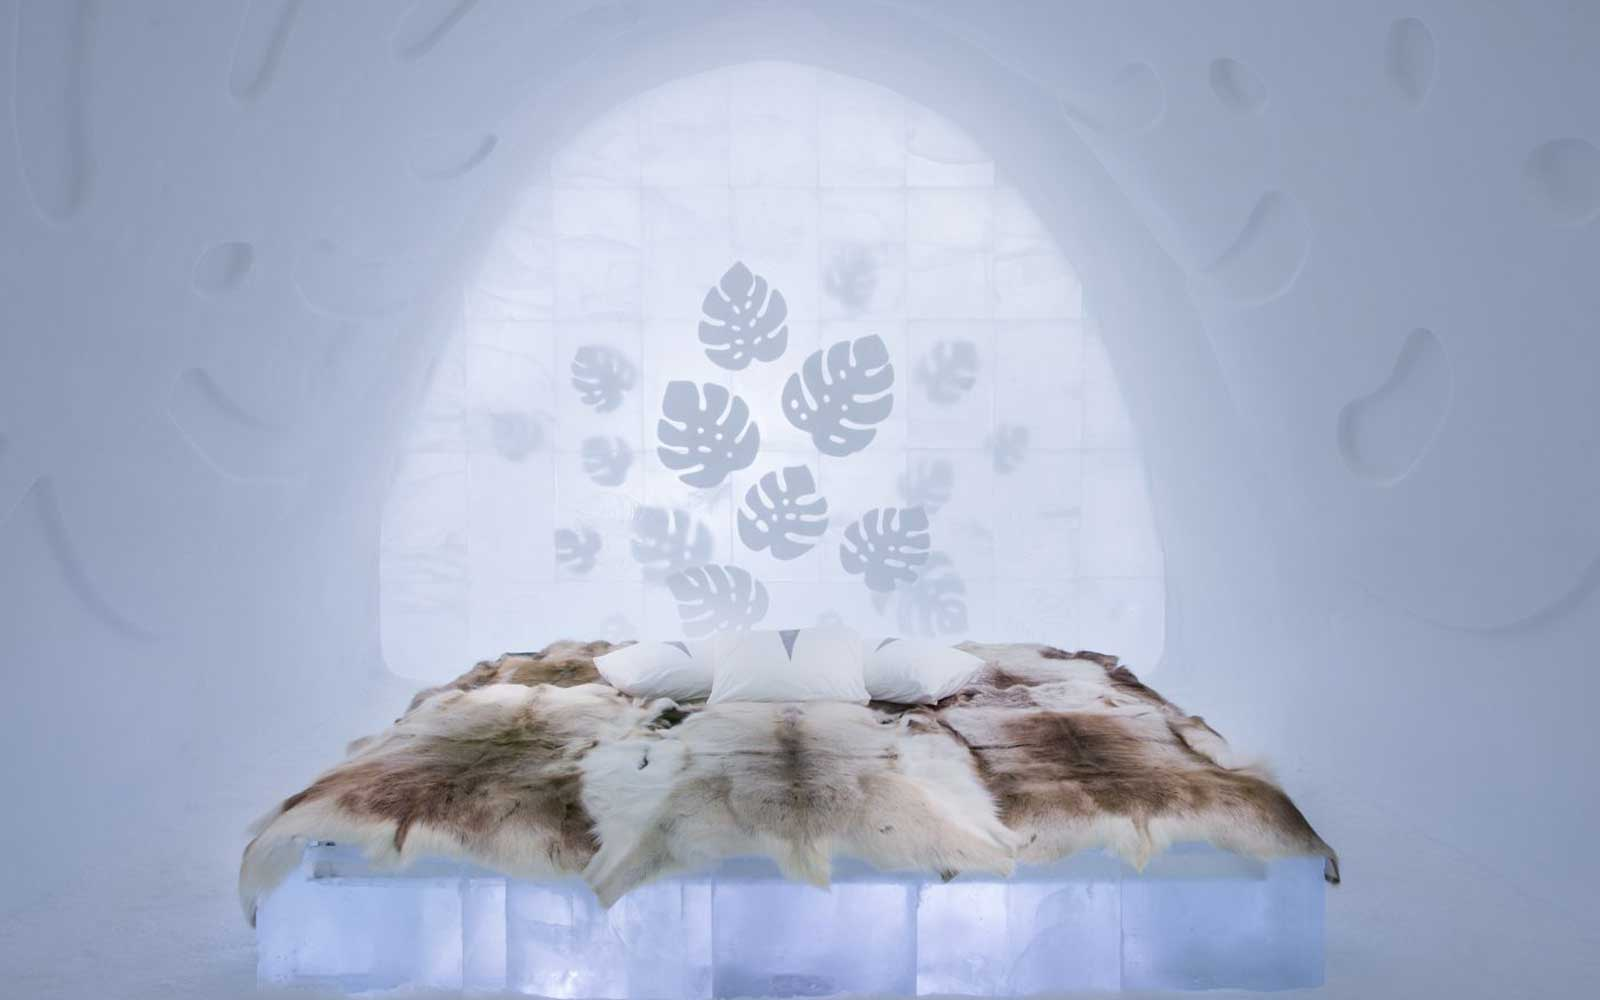 Sweden Ice Hotel Art Suite Monstera Room